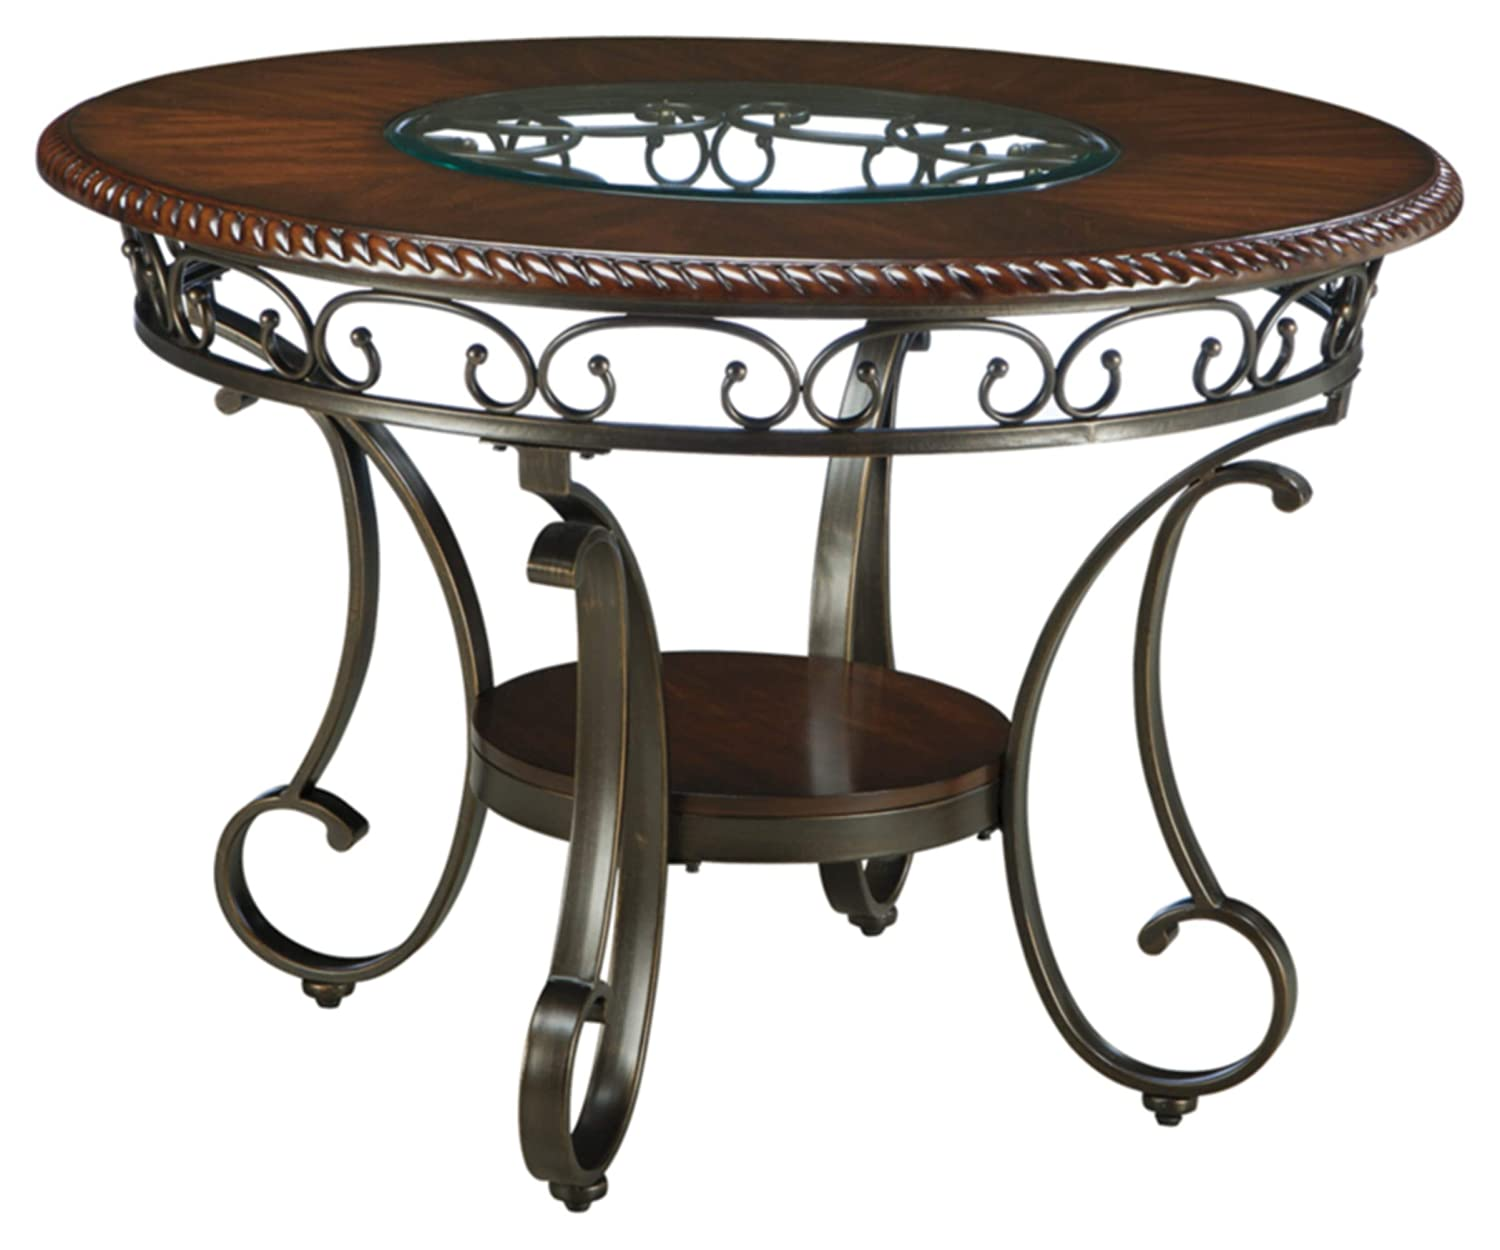 Ashley Furniture Signature Design - Glambrey Dining Room Table - Round - Brown